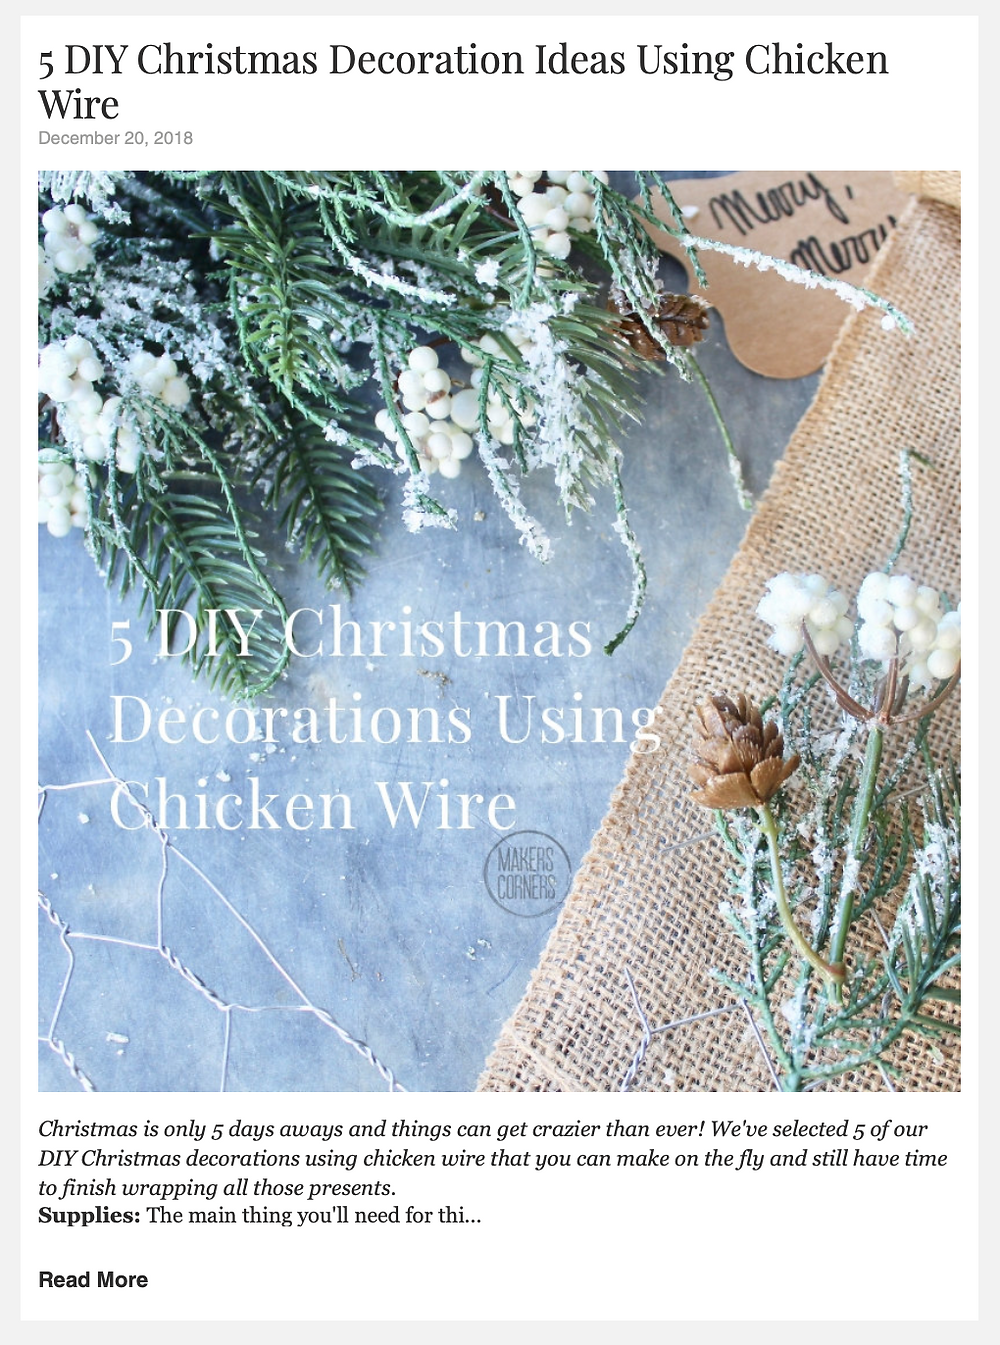 5 DIY Christmas Ideas Using Chicken Wire